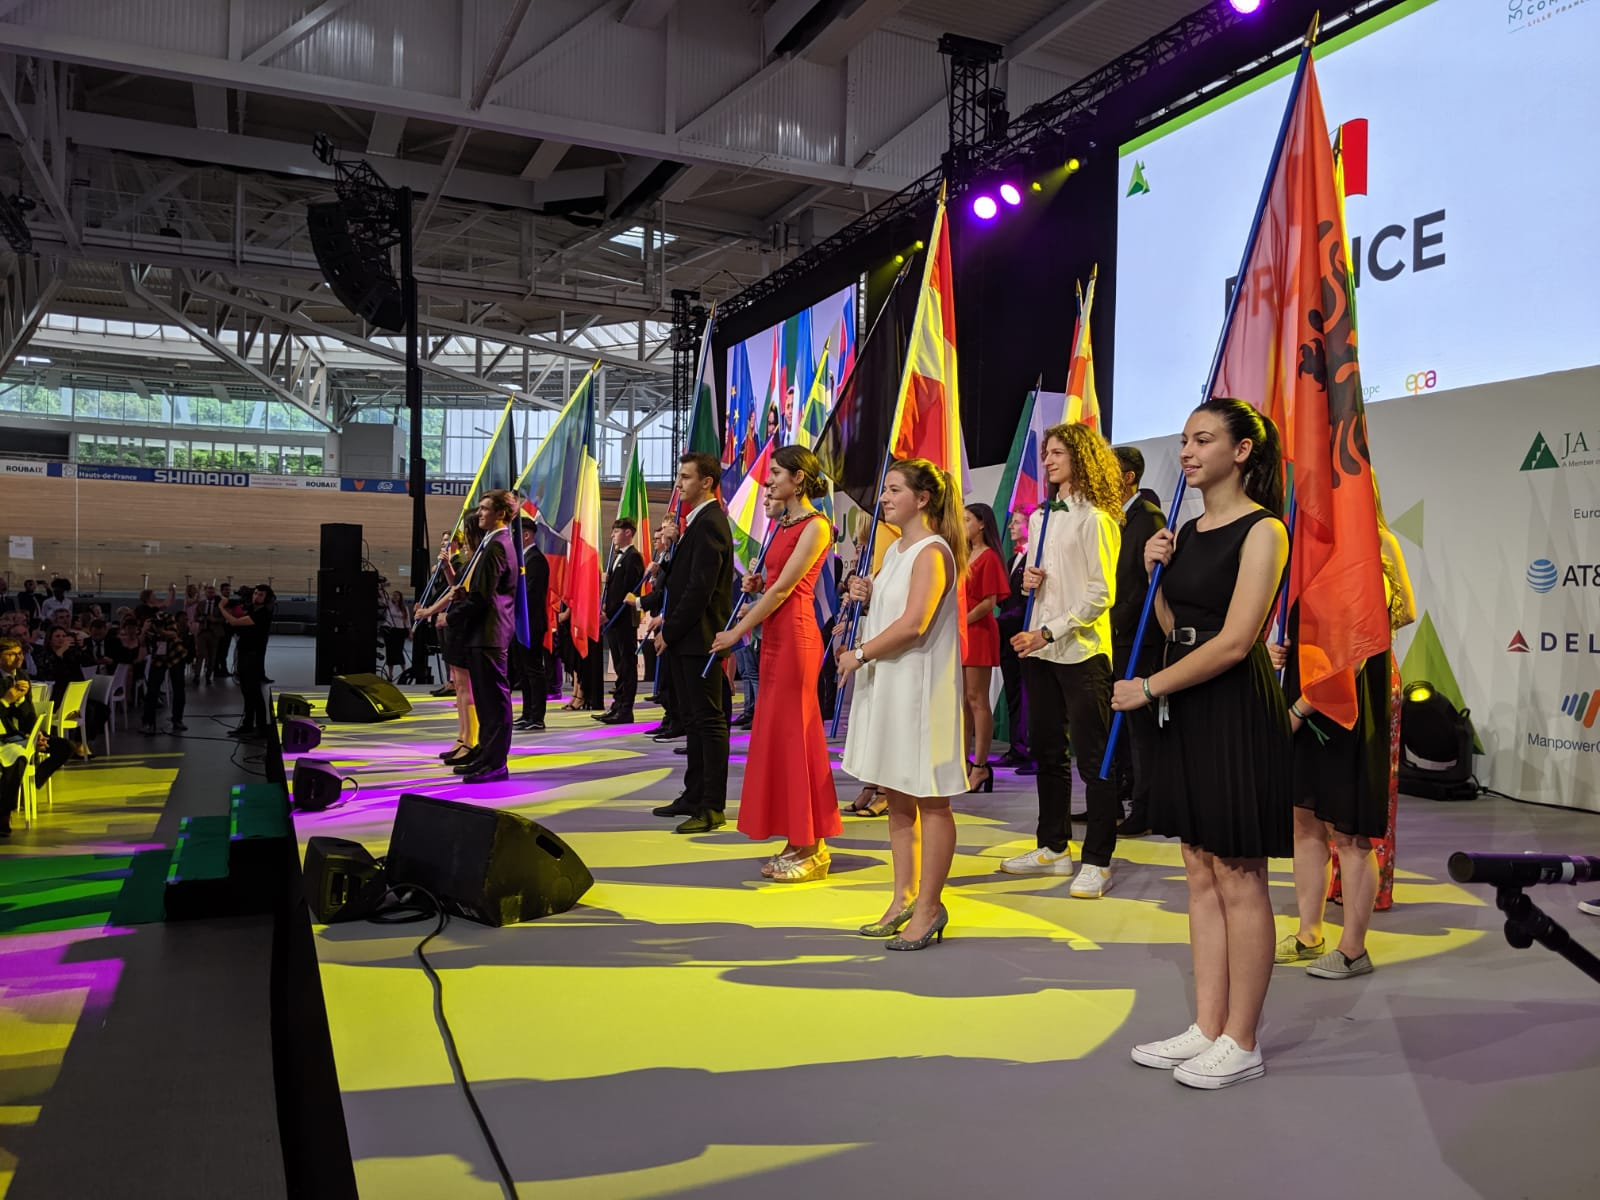 Students proudly represent their countries on stage.